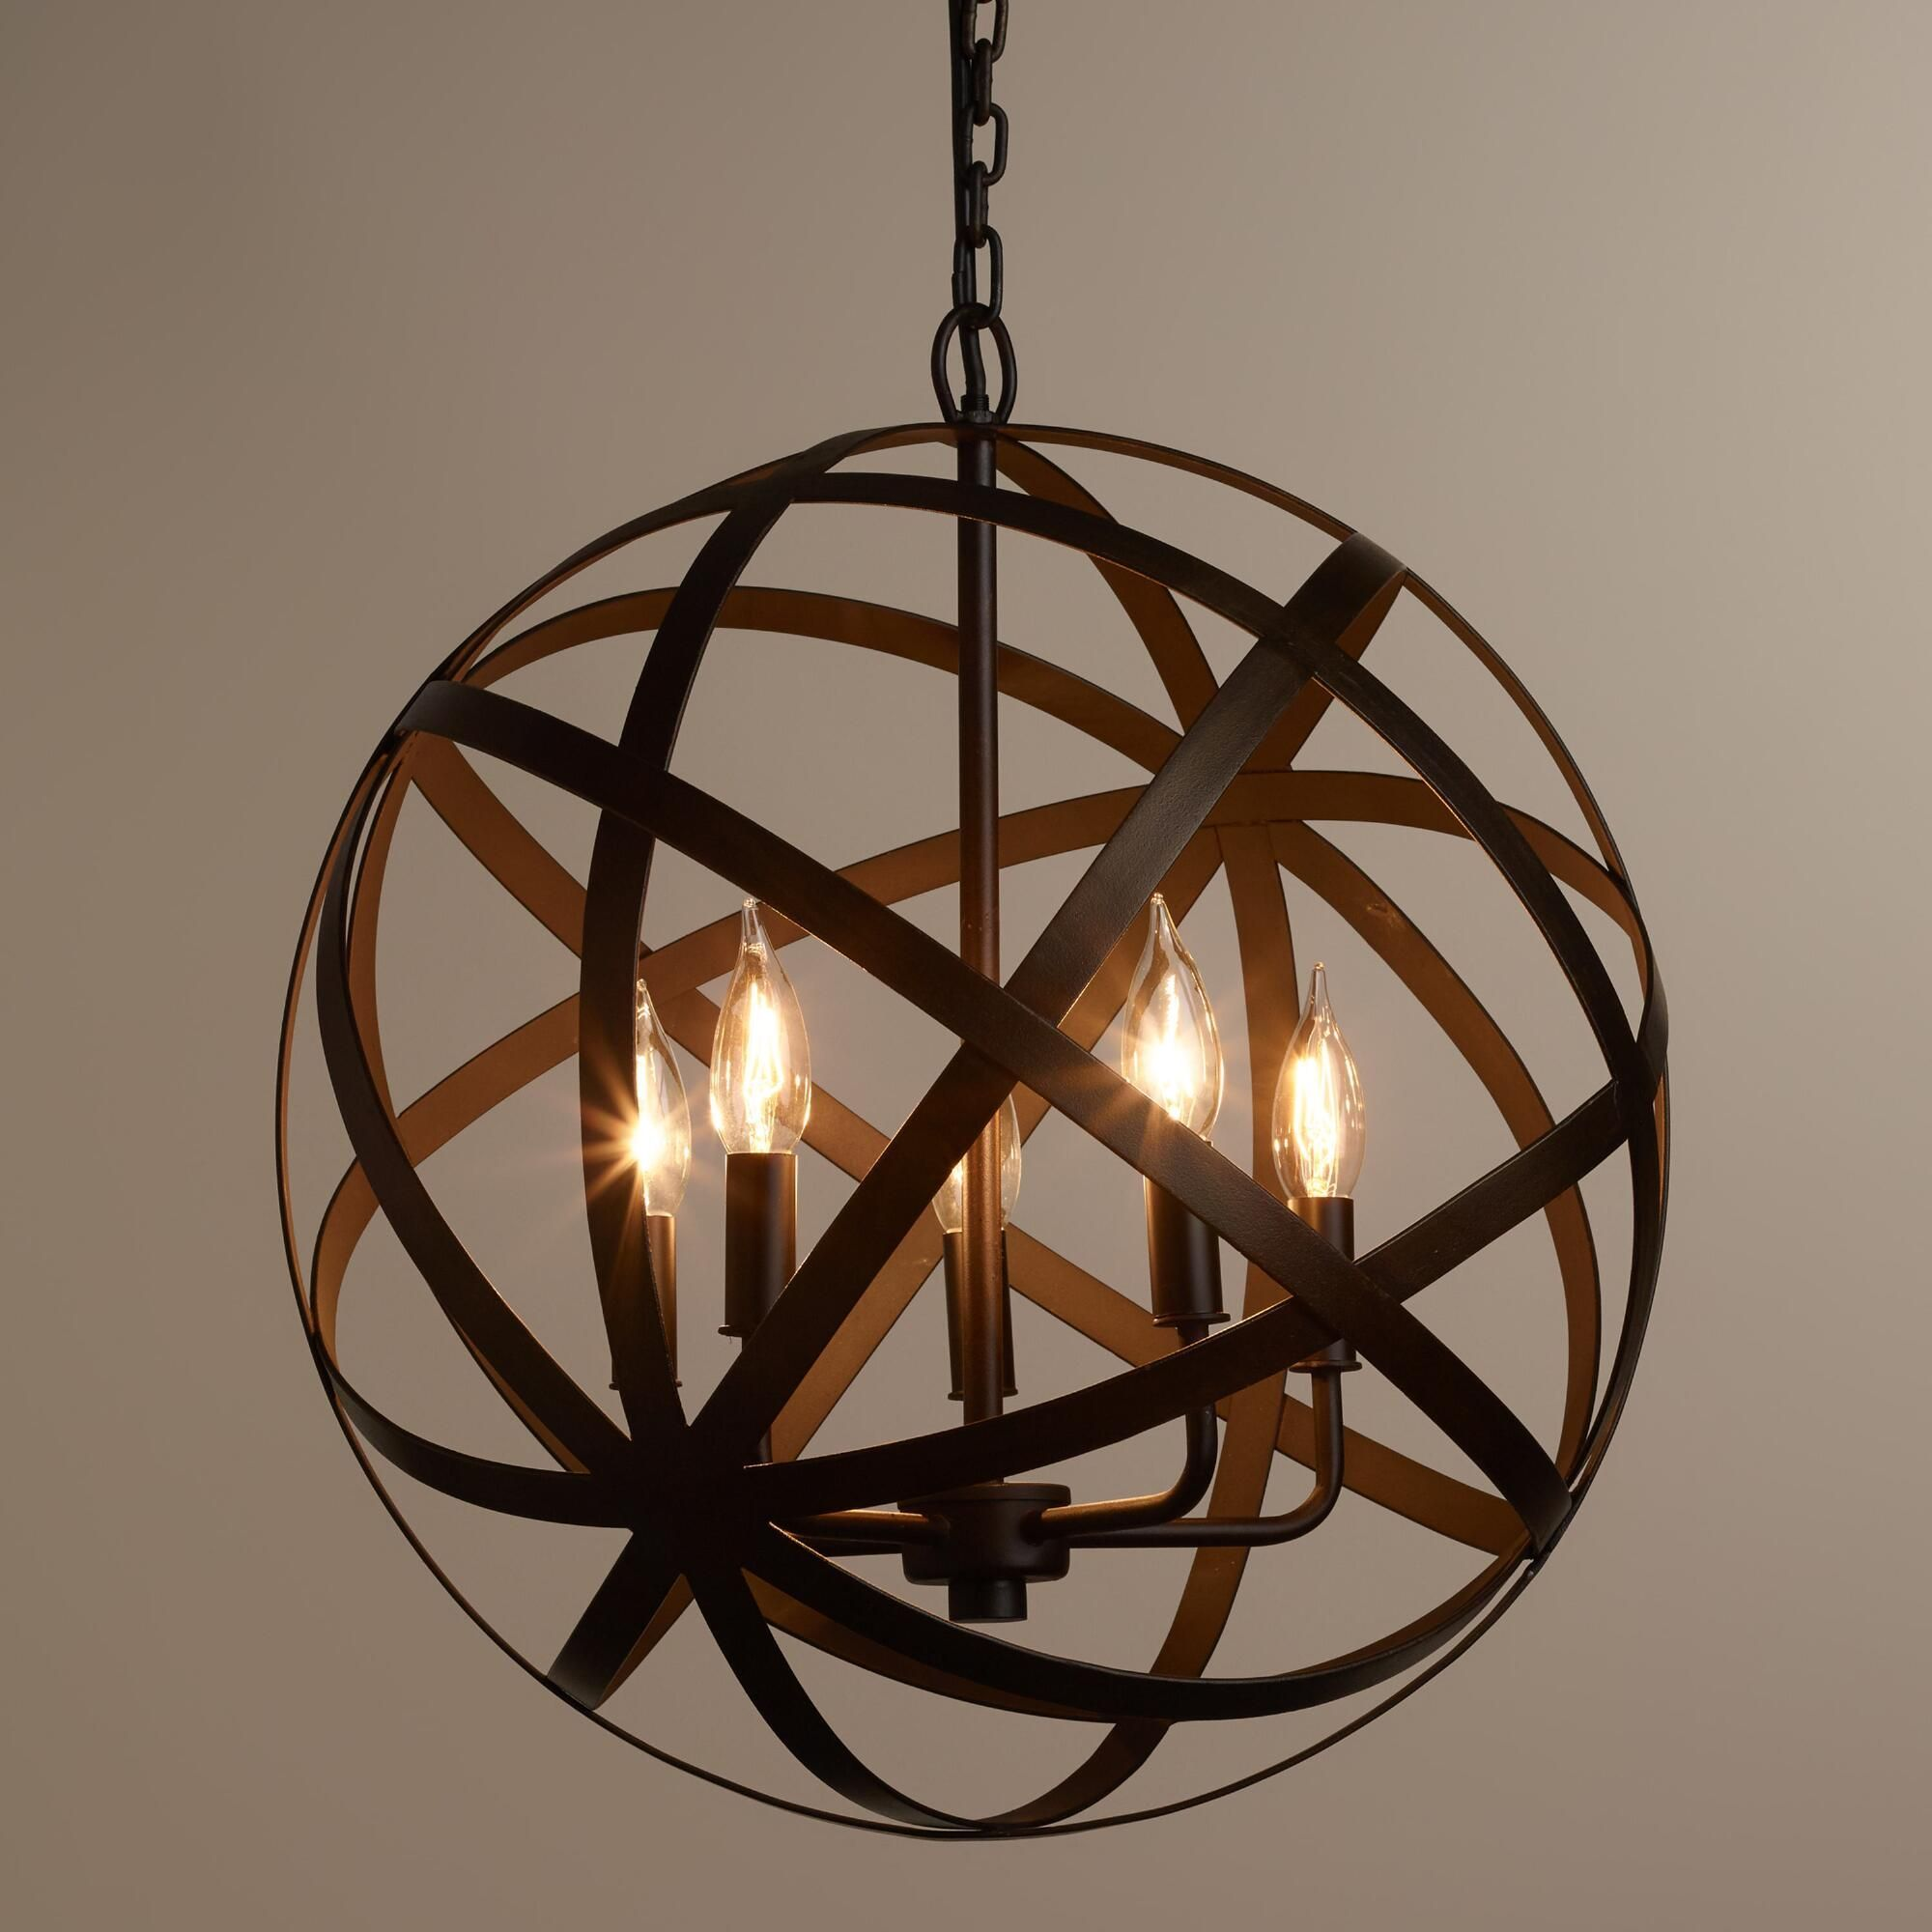 We Re Proud To Present Our Exclusive Metal Orb Chandelier Finely Crafted By Artisans